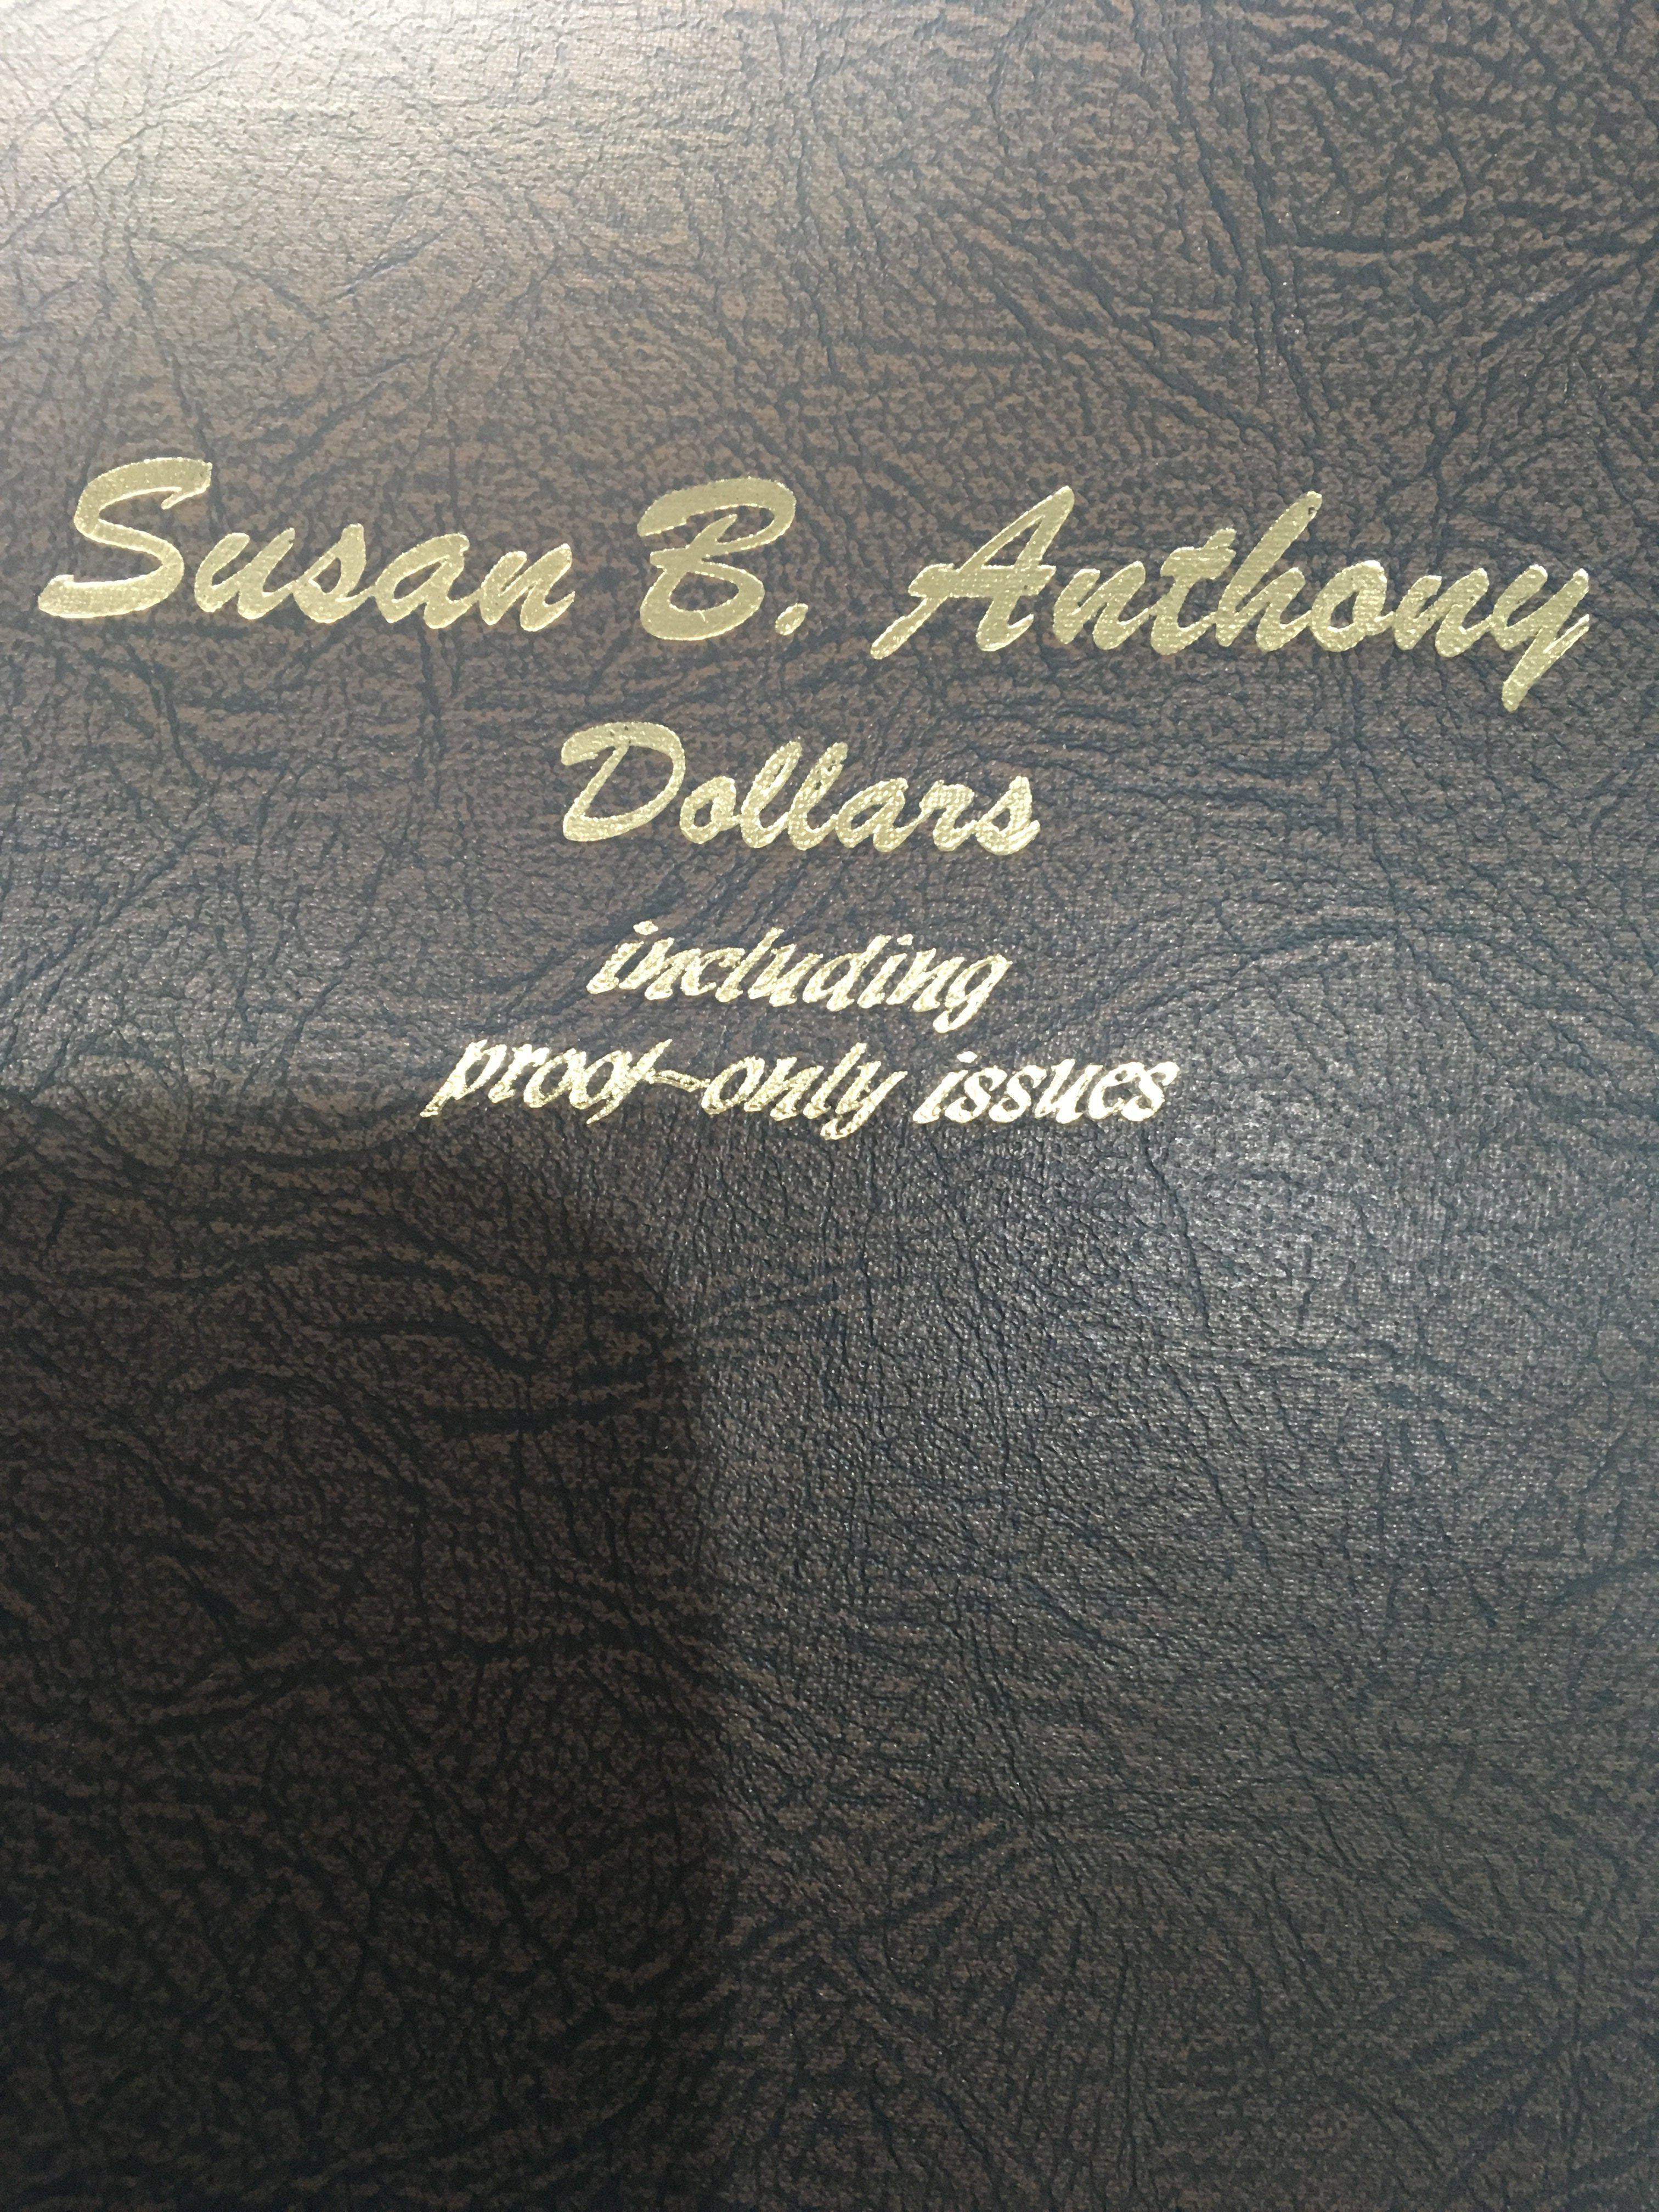 Lot 105 - An Album containing Susan B Anthony Dollars. Proof